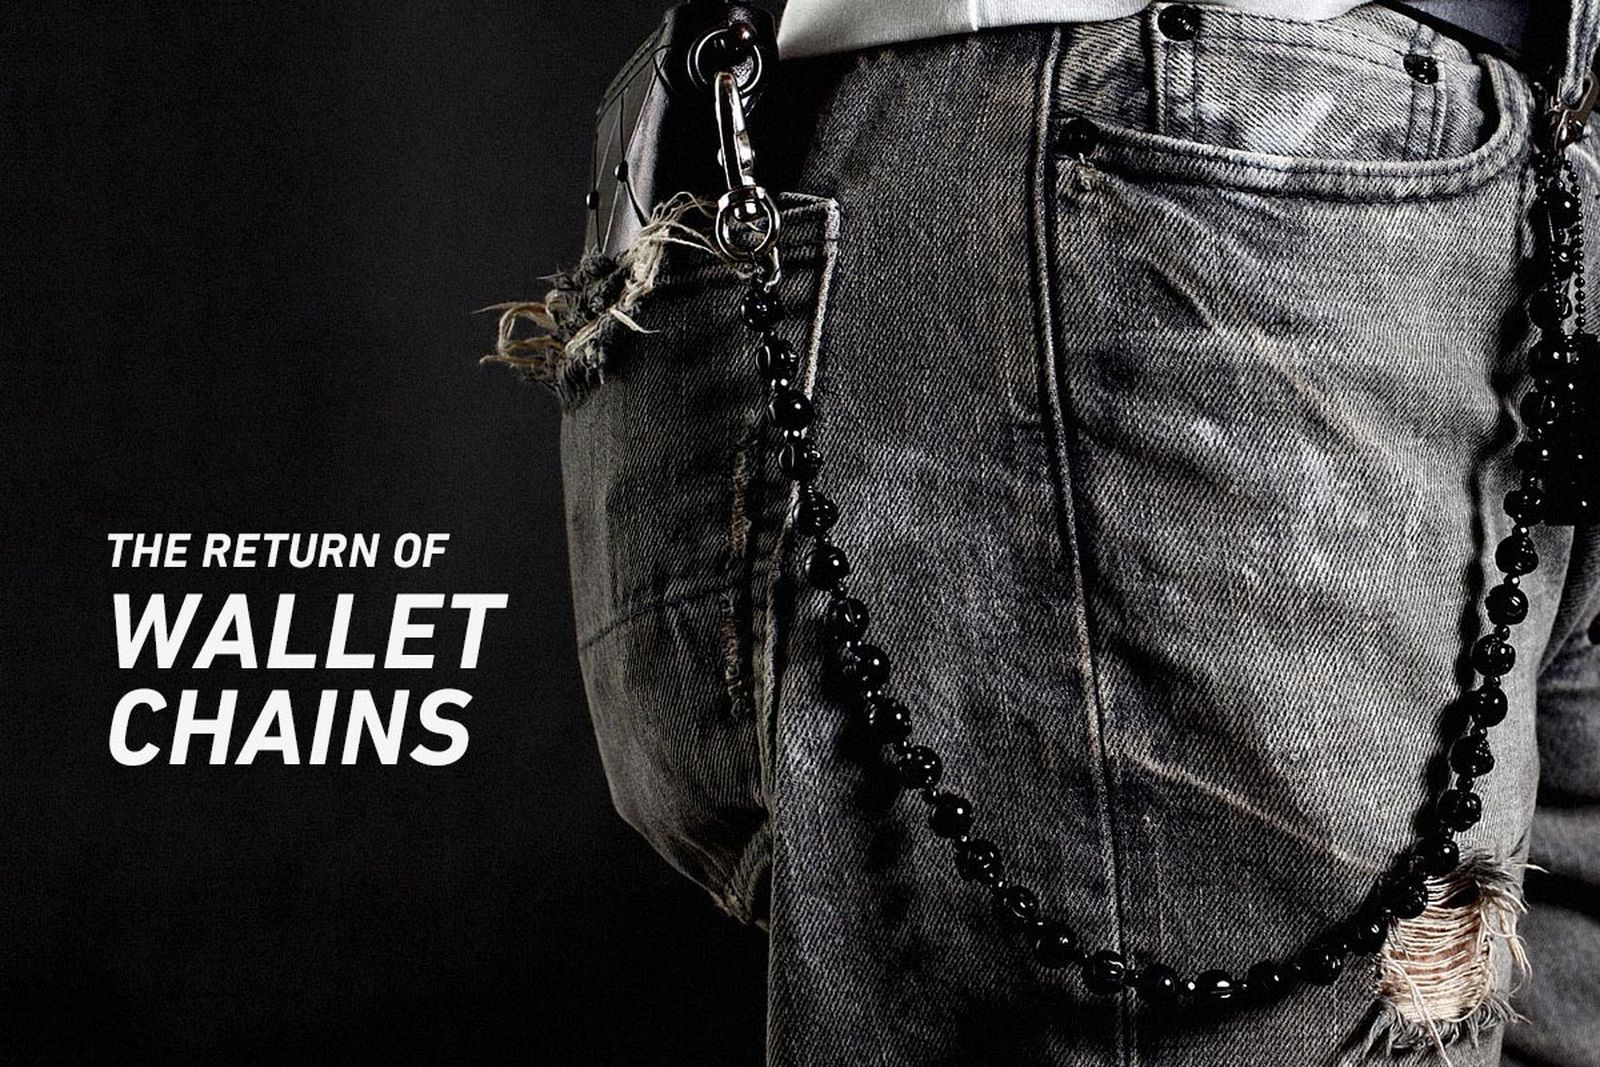 The-Return-of-Wallet-Chains-main